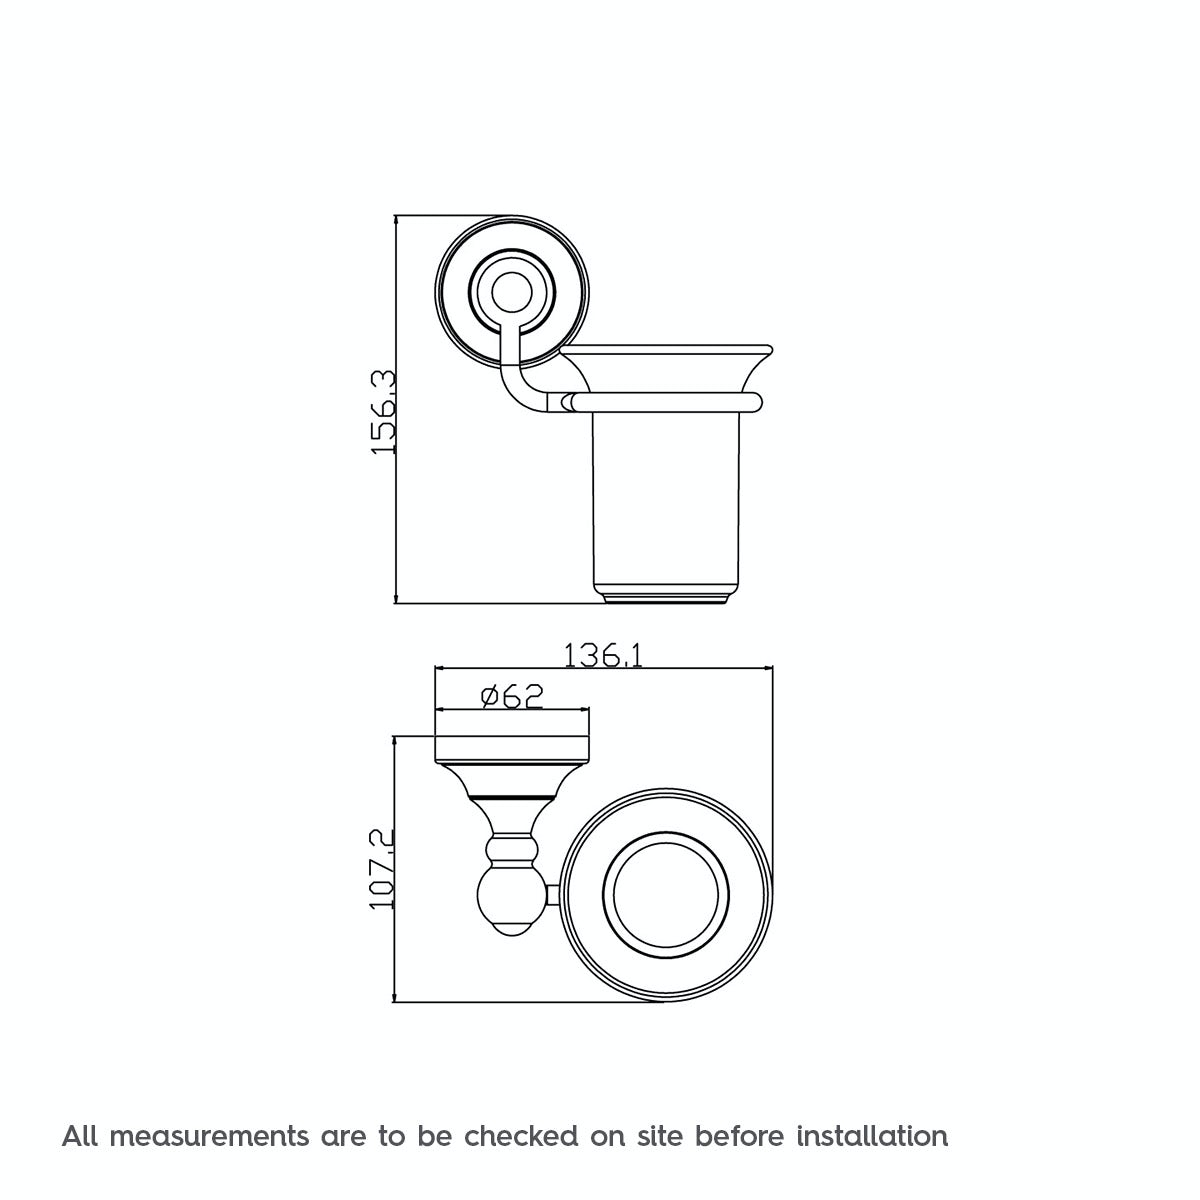 Dimensions for The Bath Co. Winchester ceramic tumbler and holder